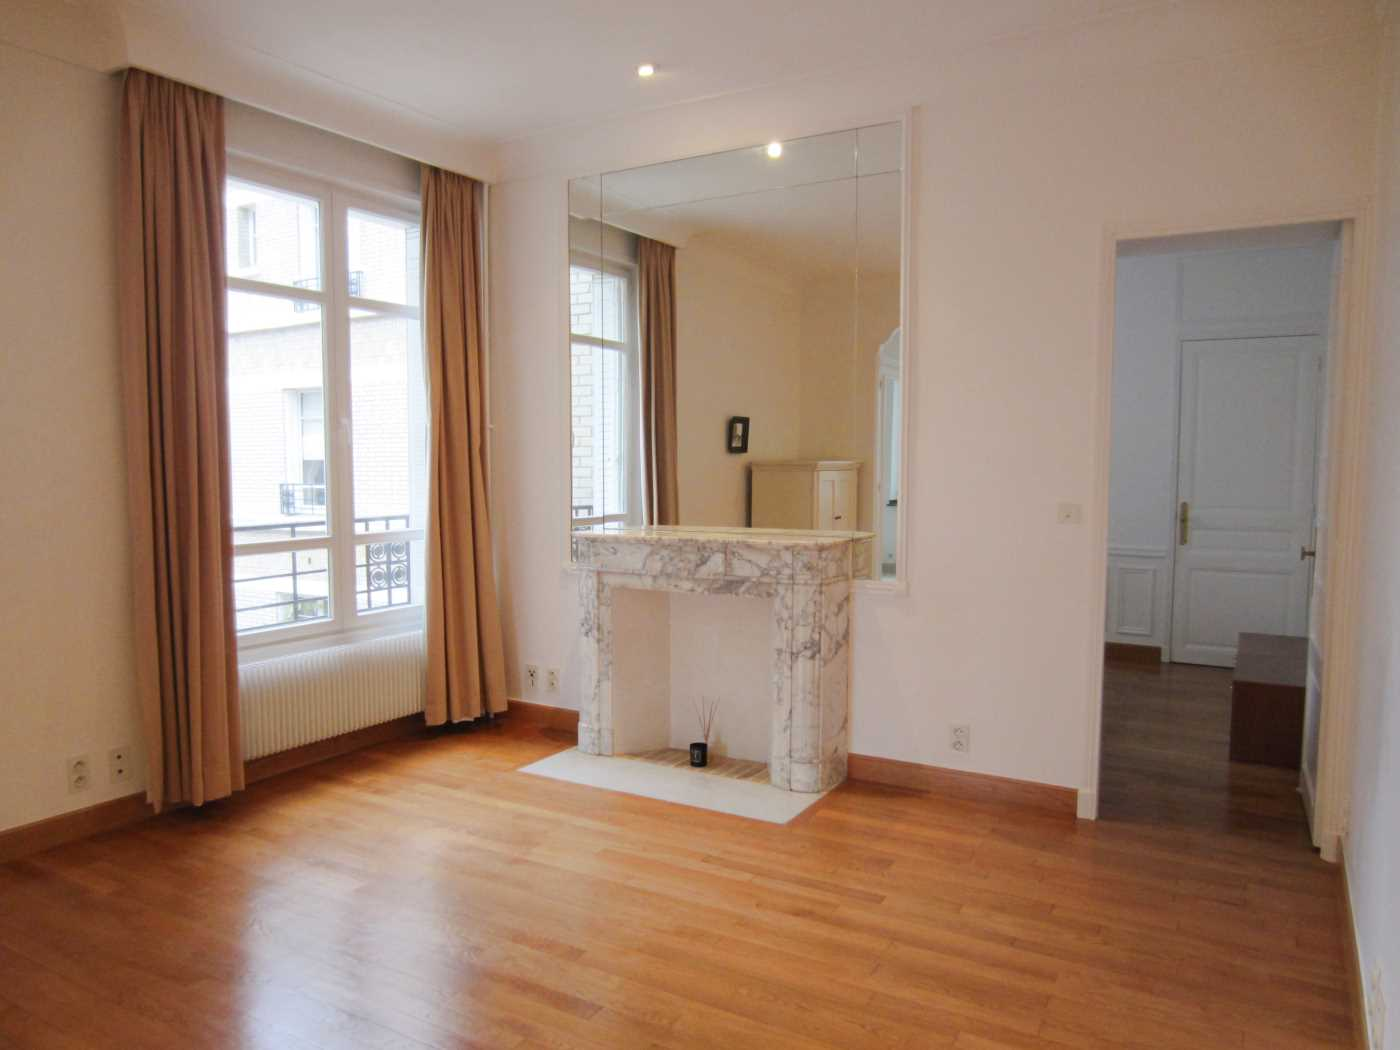 Location Appartement Vide Paris 16